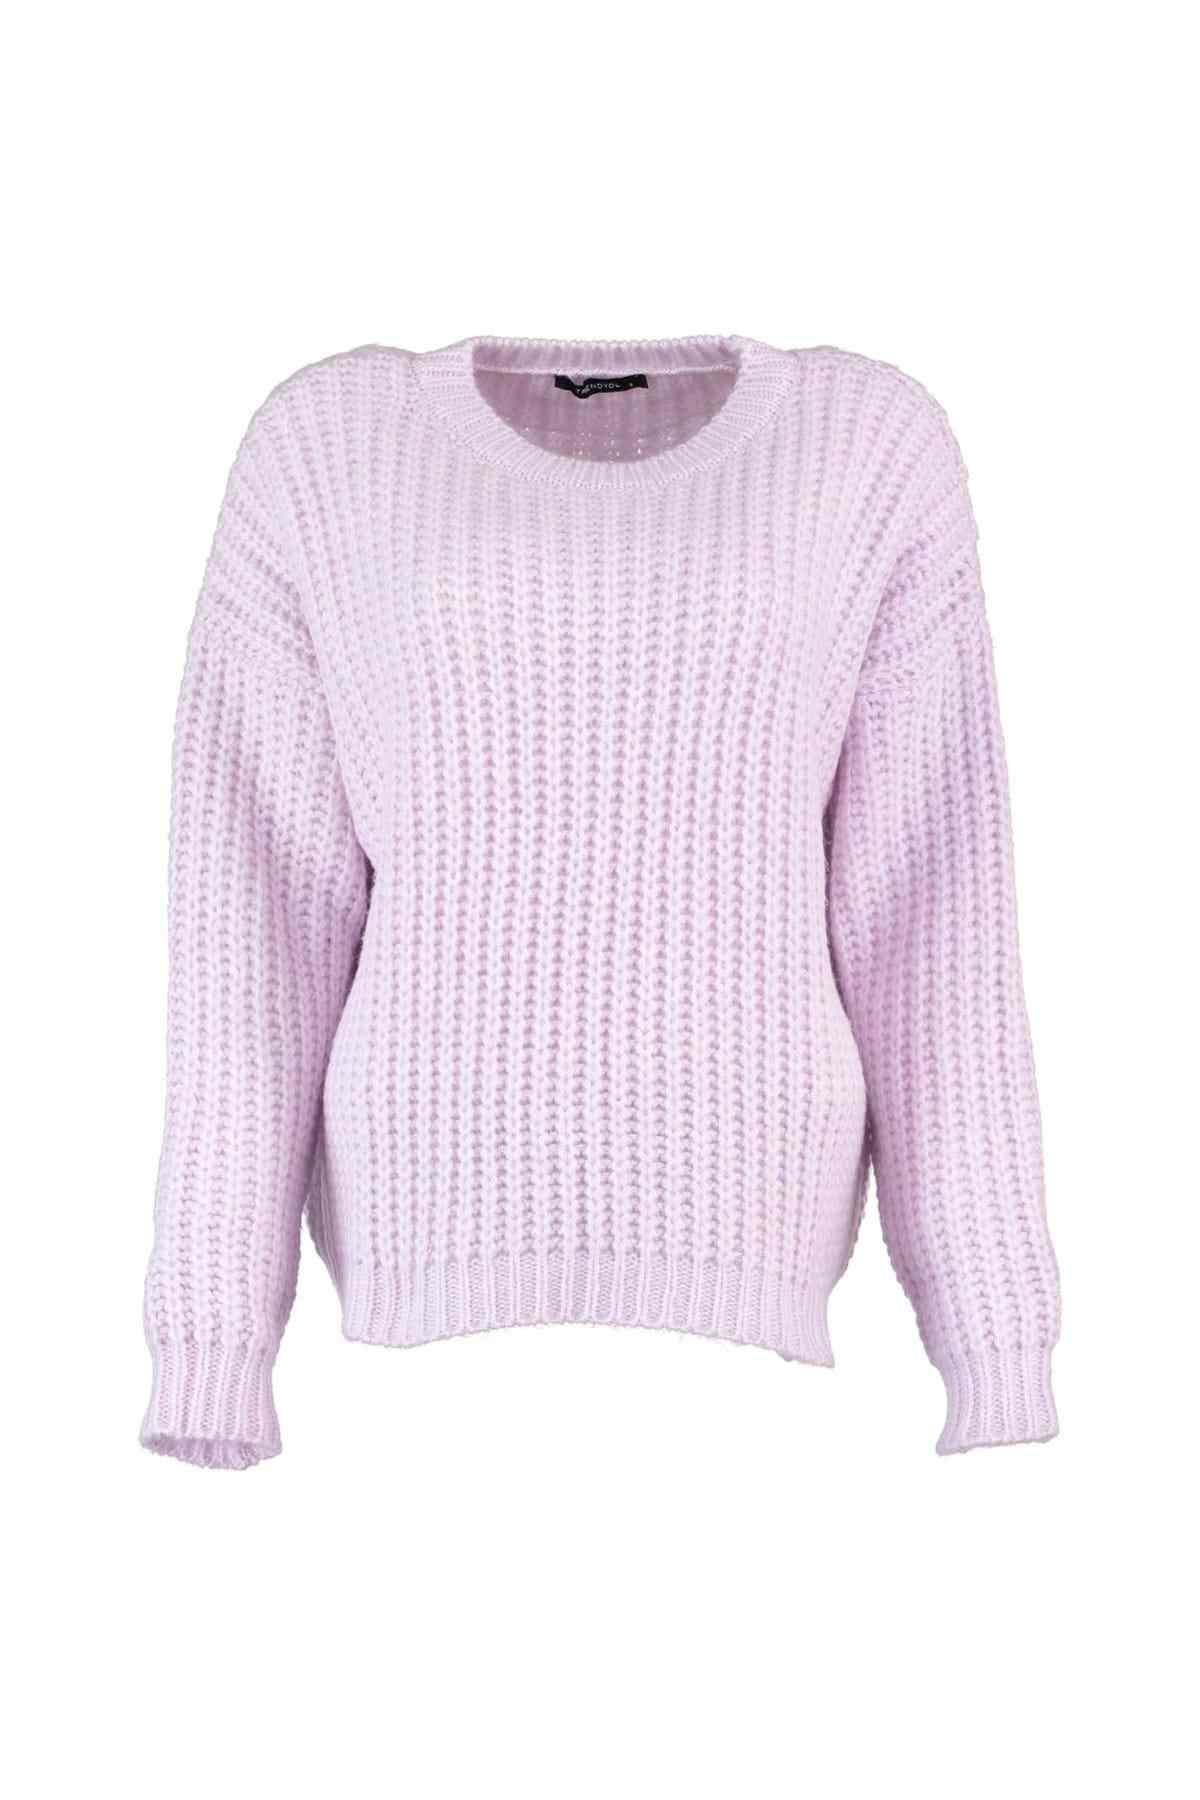 Trendyol WOMEN-Lilac Bike Collar Sweater Sweater TWOAW20ZA0023